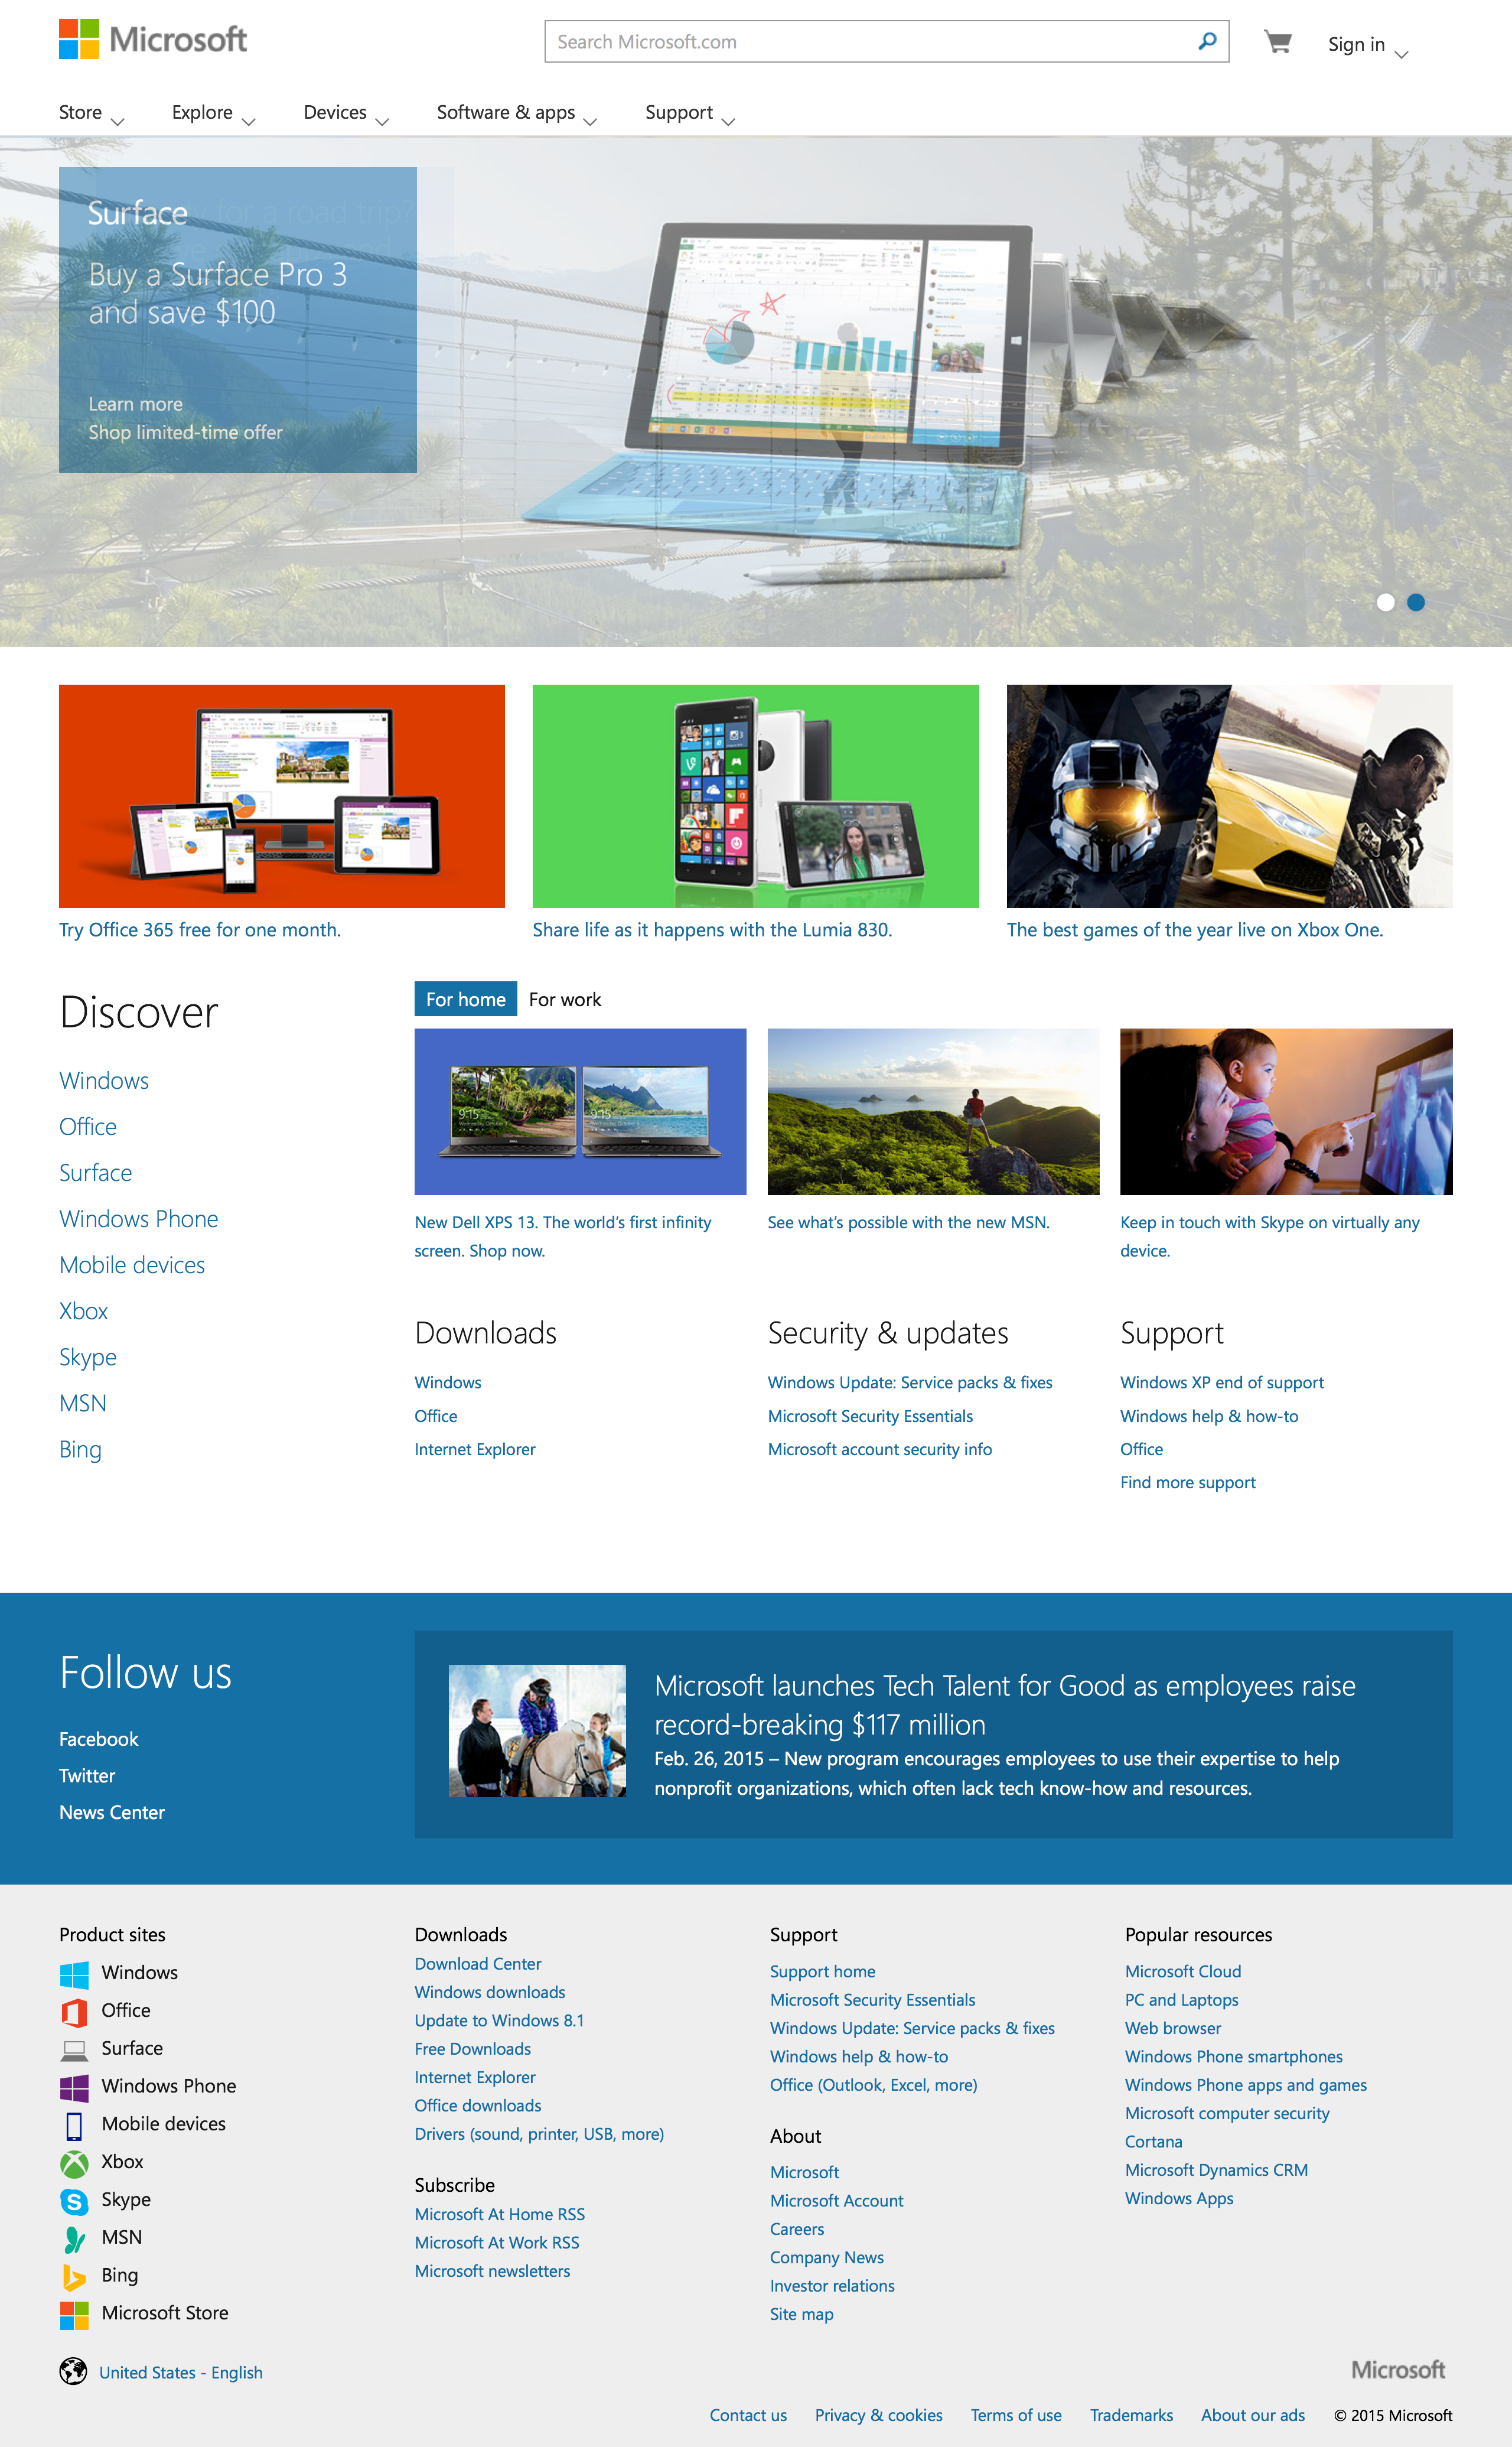 Screenshot of Microsoft official home page